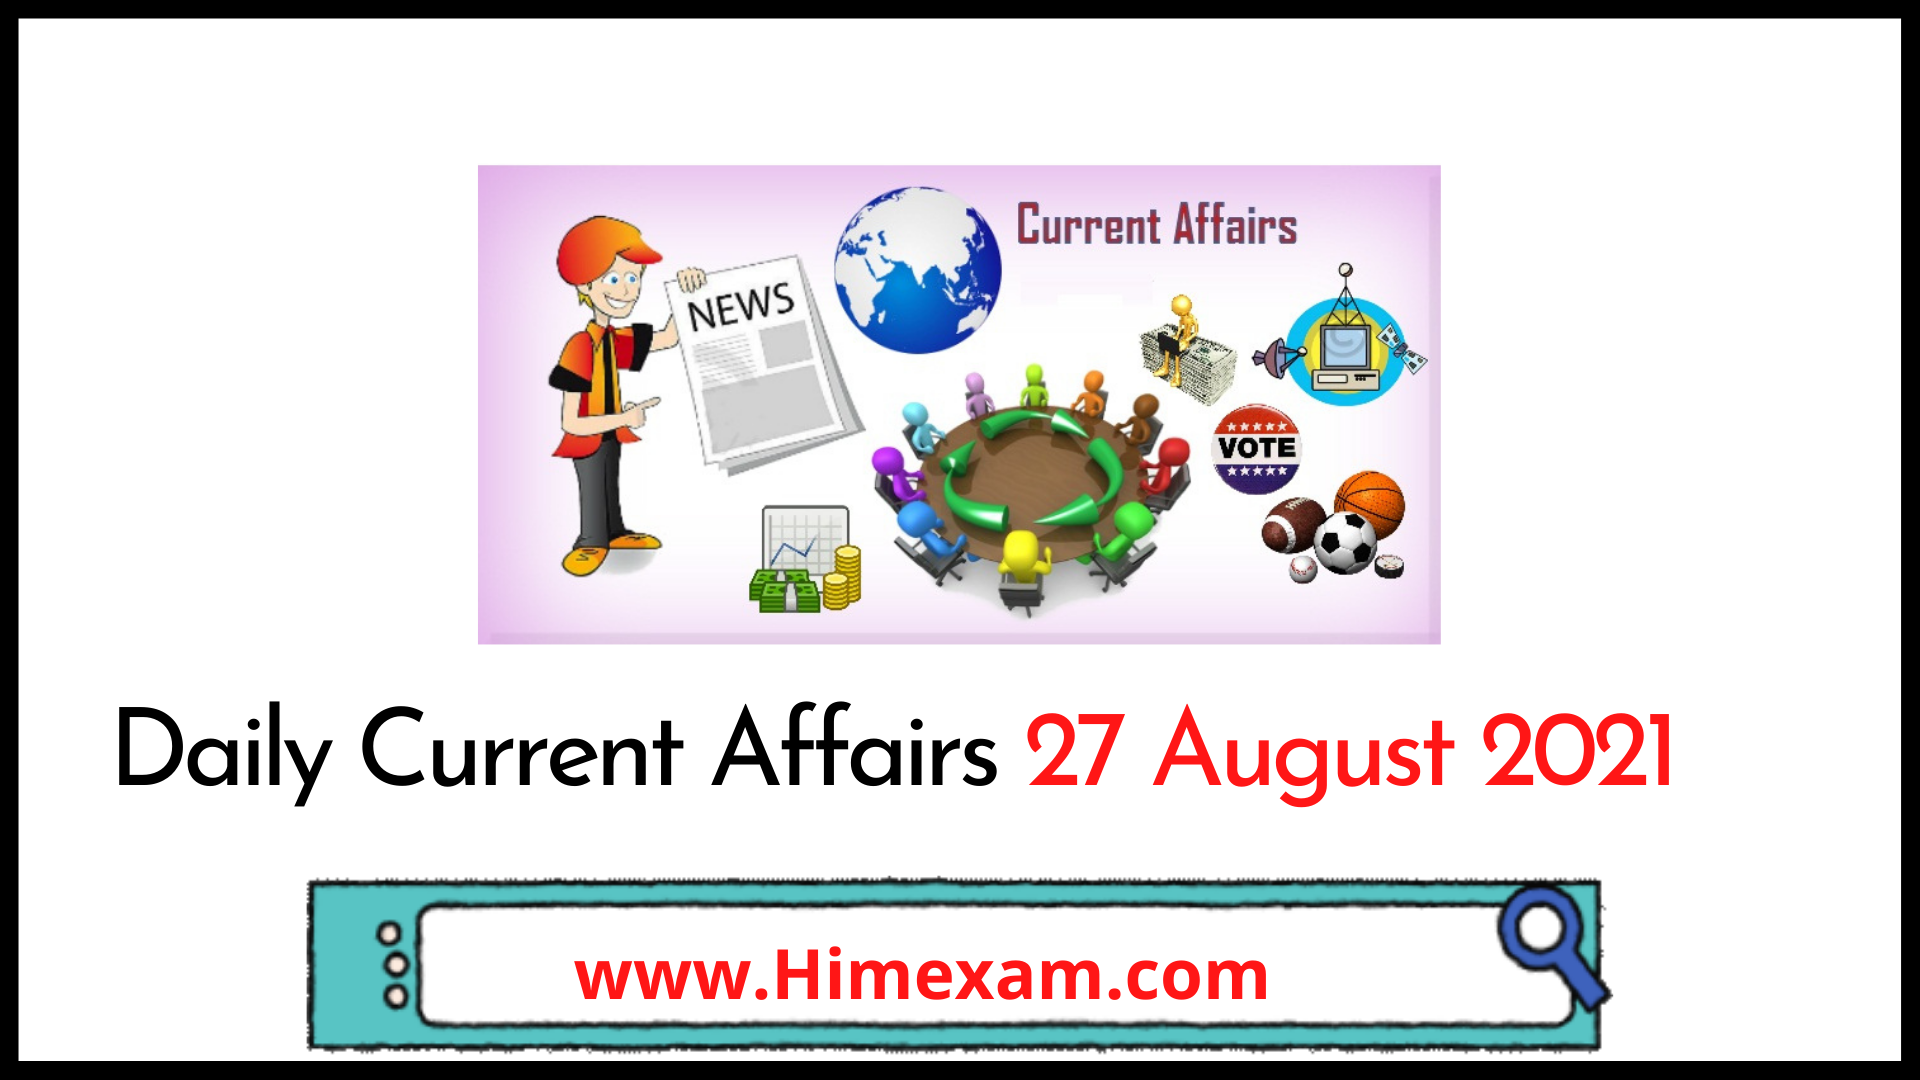 Daily Current Affairs 27 August 2021